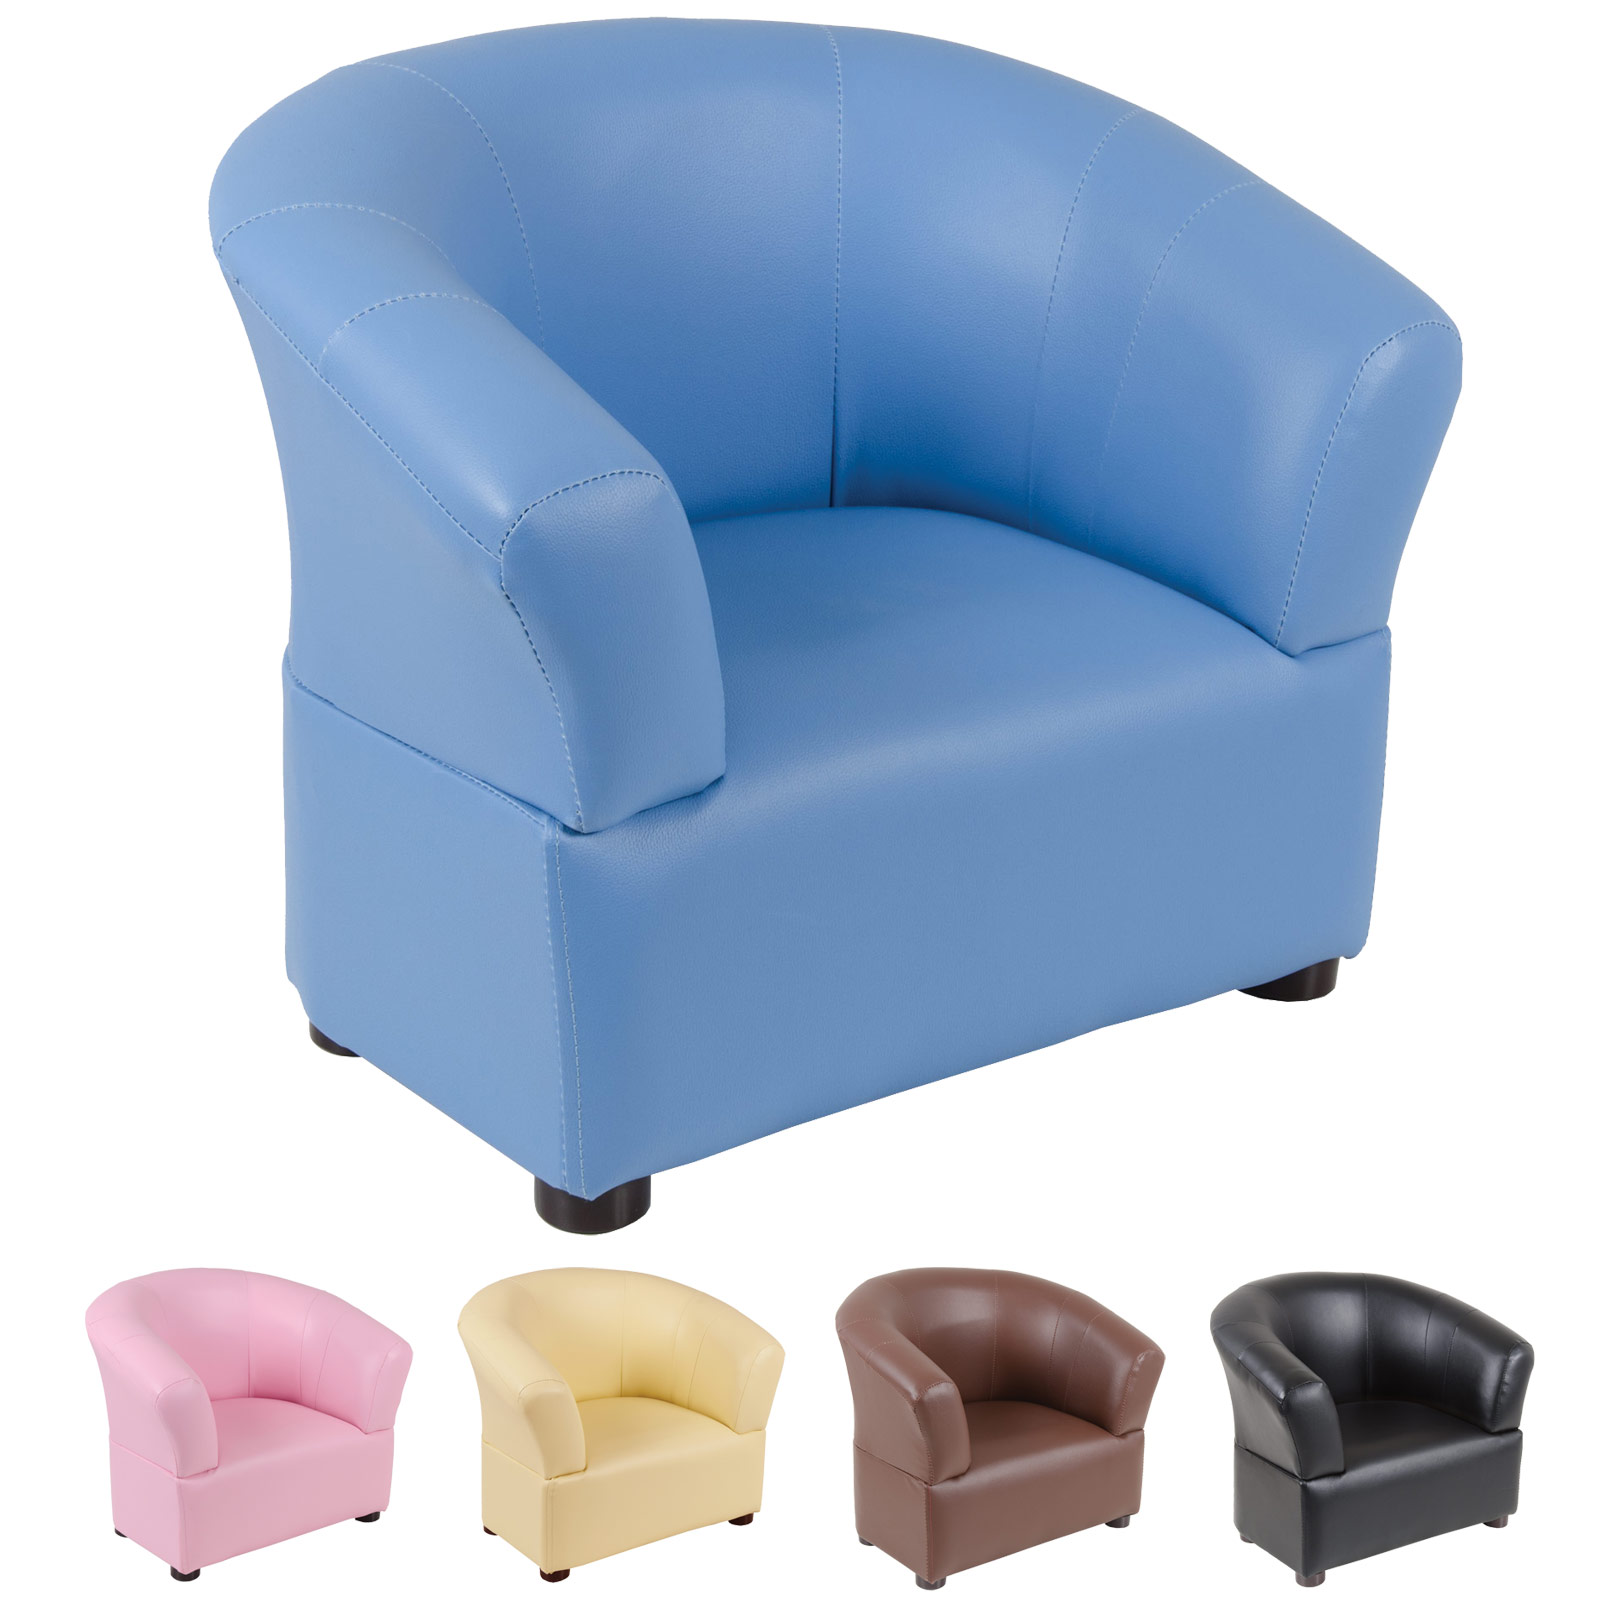 Comfiest Chair Kids Comfy Pvc Leather Look Tub Chair Armchair Seat